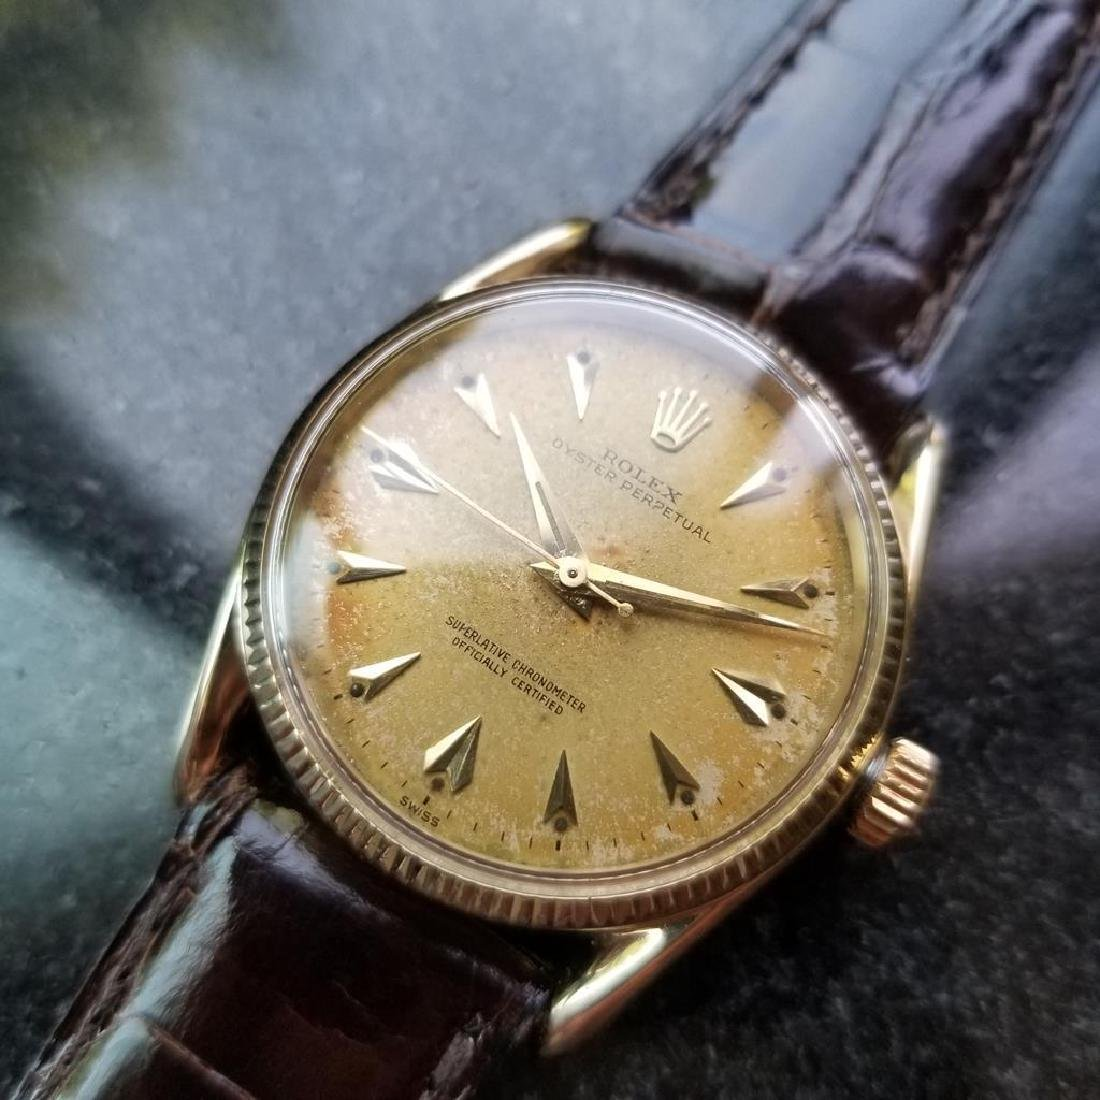 ROLEX Men's 14K Gold Oyster Perpetual 1011 Bombay